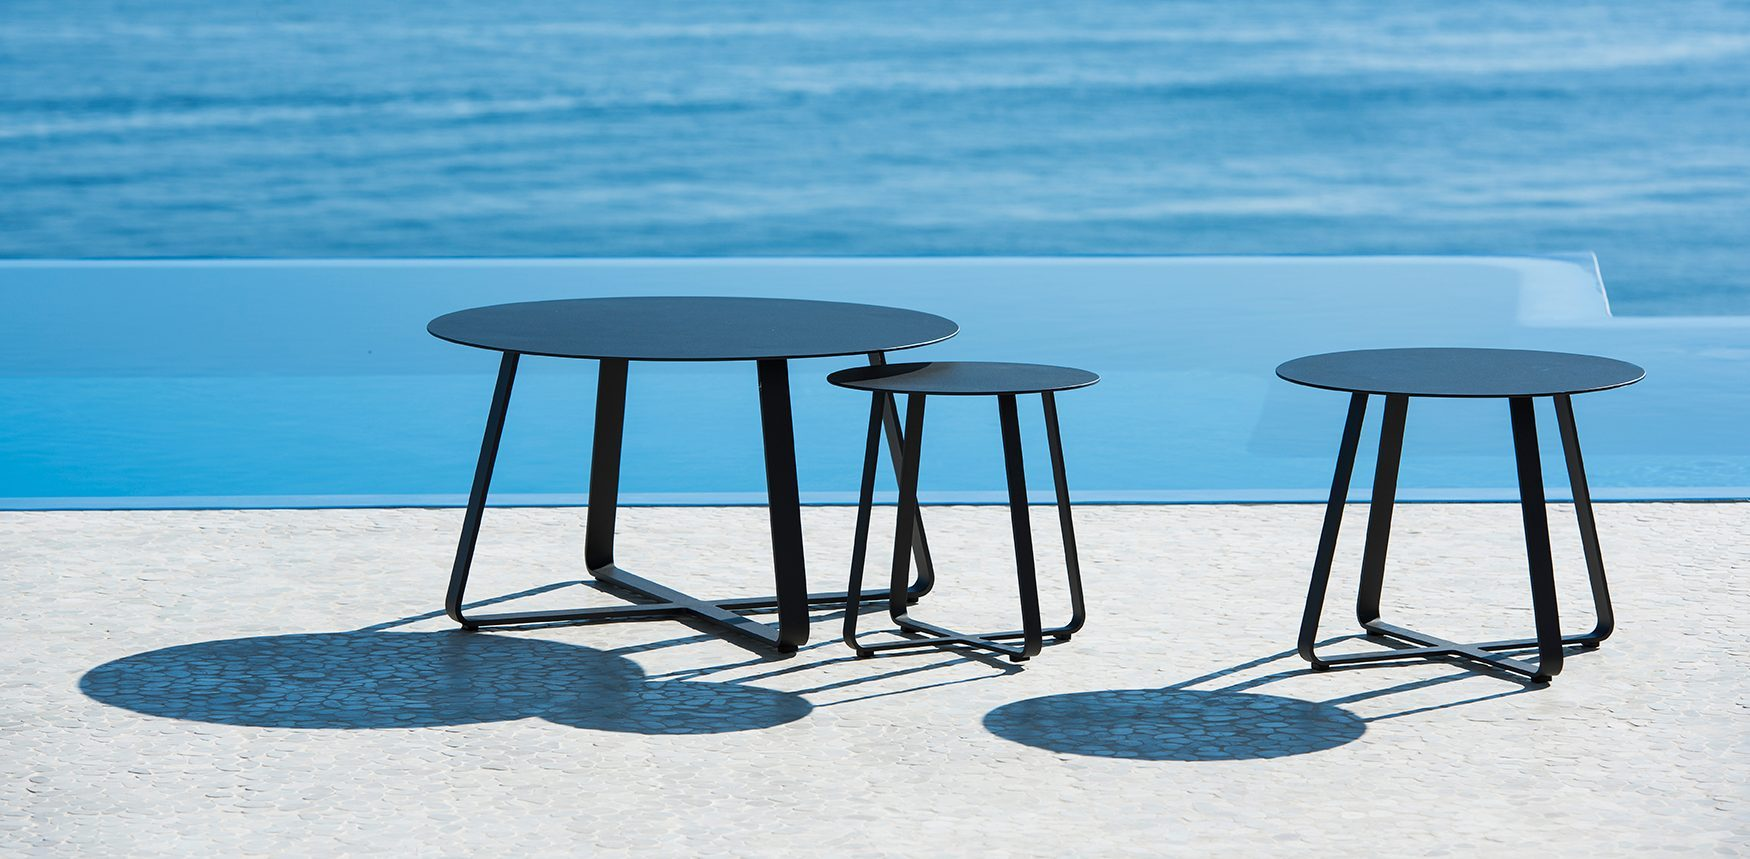 outdoor side tables archieven homein een totaalinrichter jatikebon elko table blue nice put book down your drink make choice from our collection and garden set complete piece